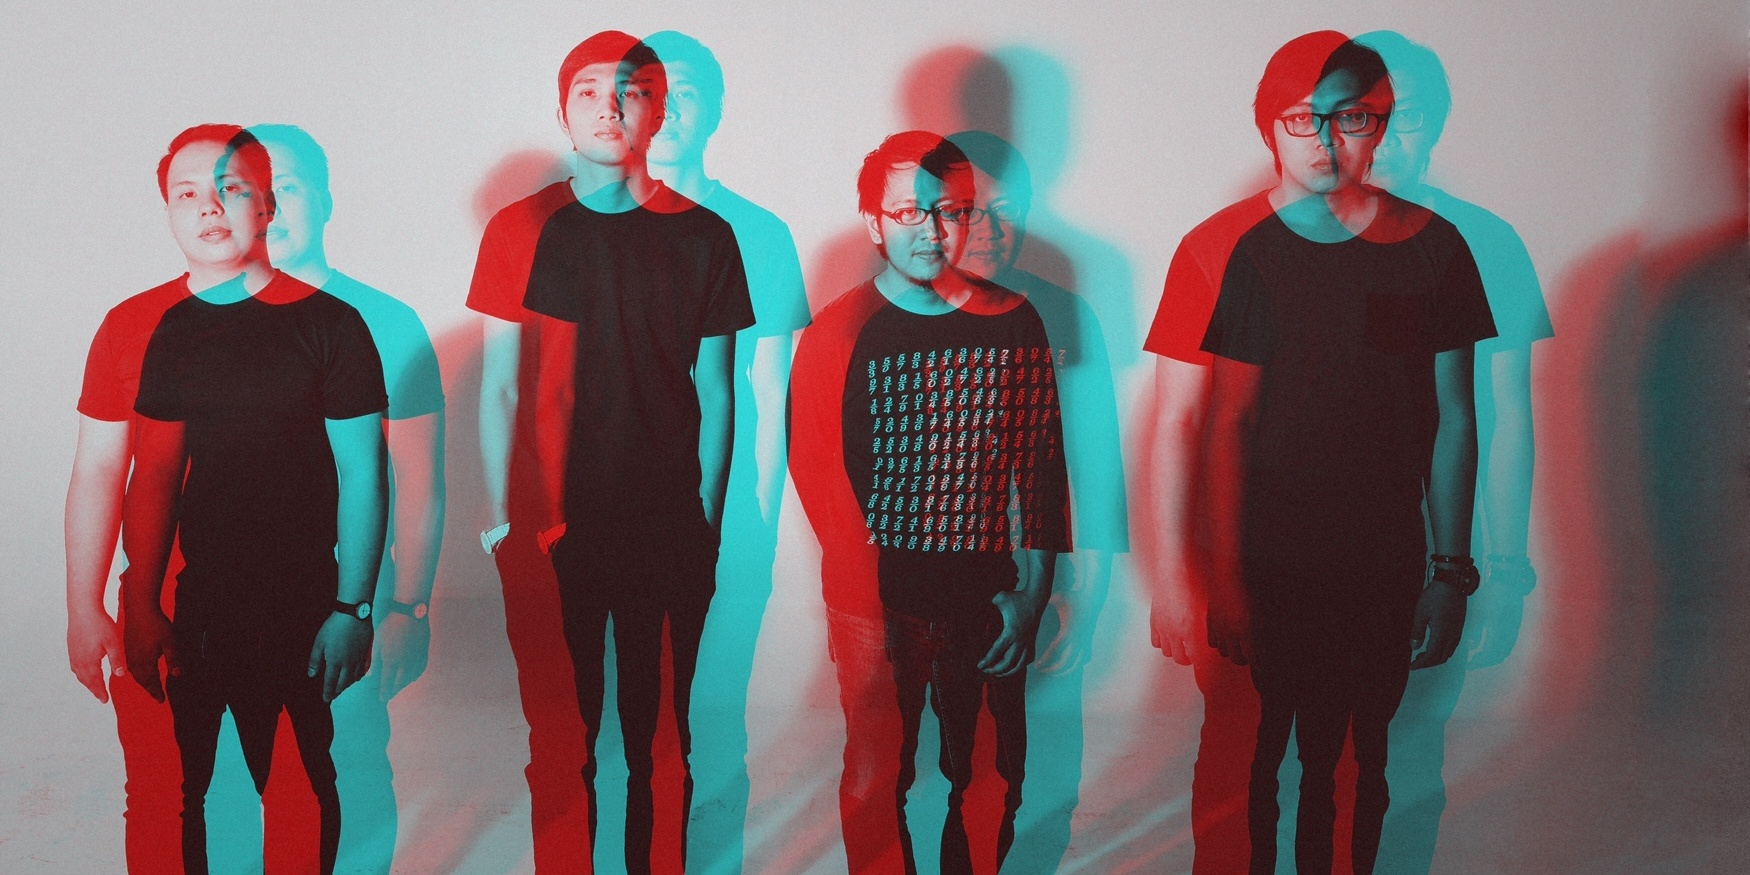 WATCH: tide/edit release new videos for exclusive tracks featured on Japan release